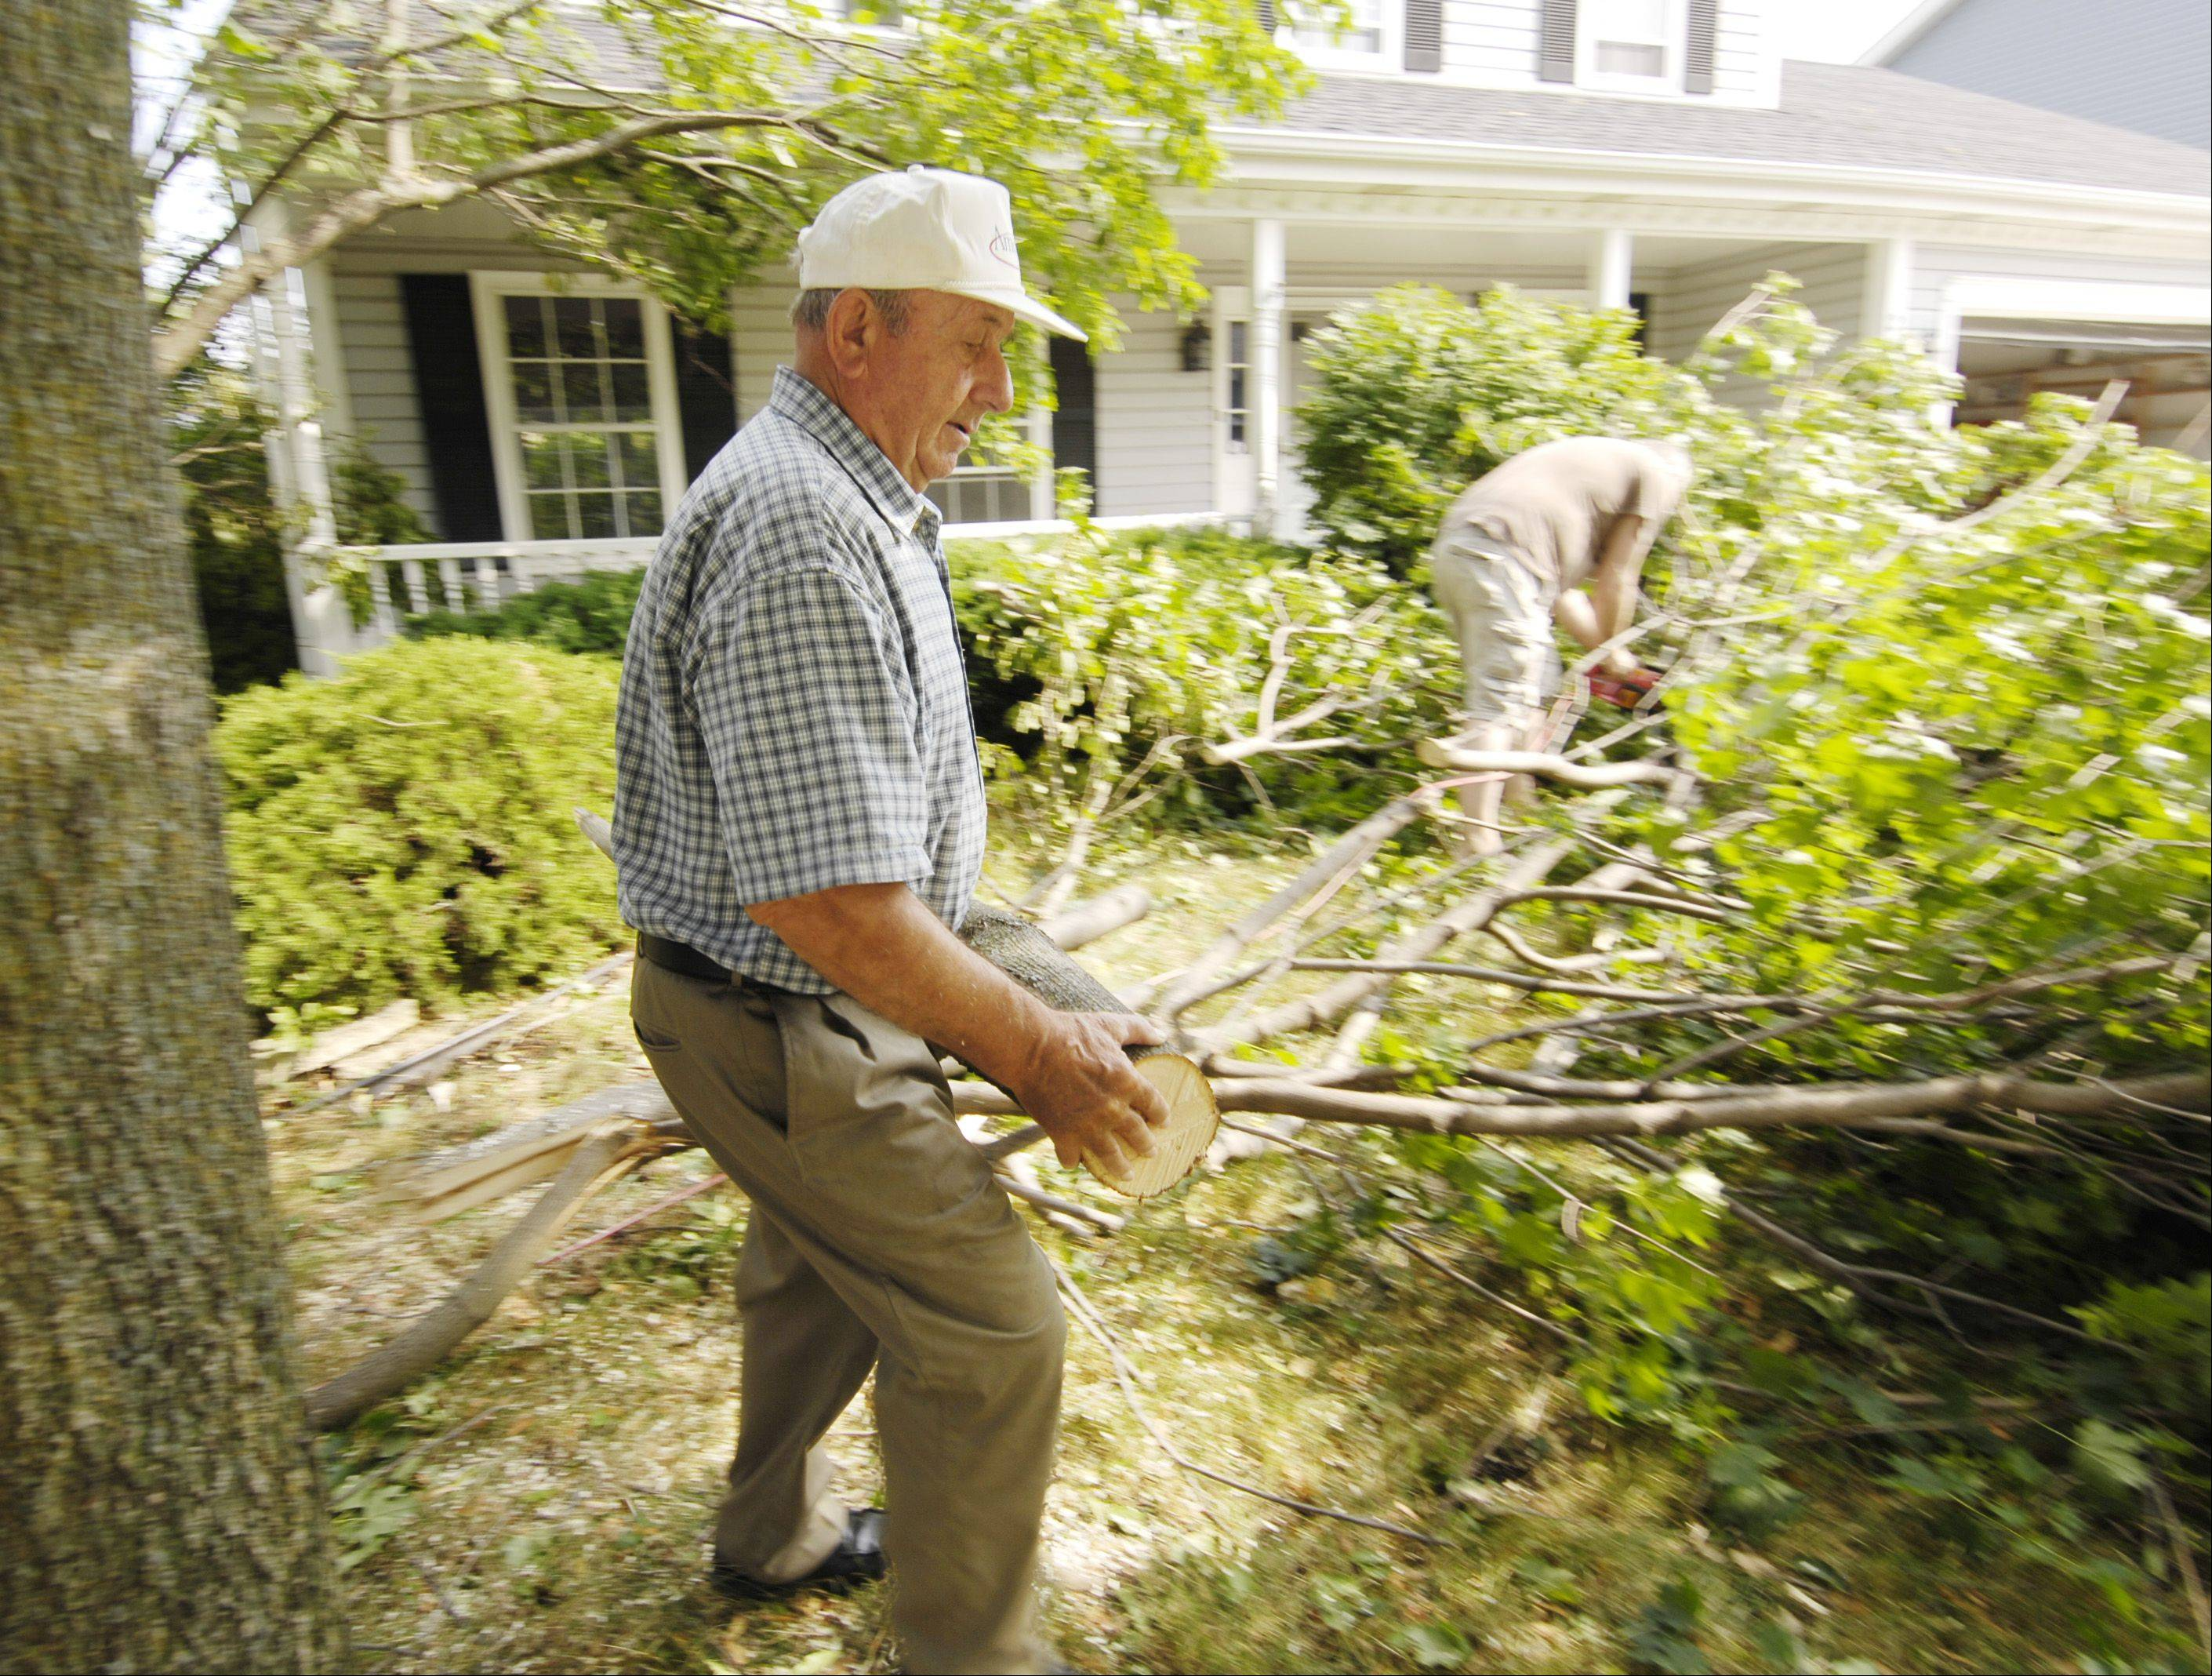 Mike Povkh and Ihor Kopytko clean up a yard in Winfield, Monday morning after the Sunday storm downed trees throughout DuPage County.